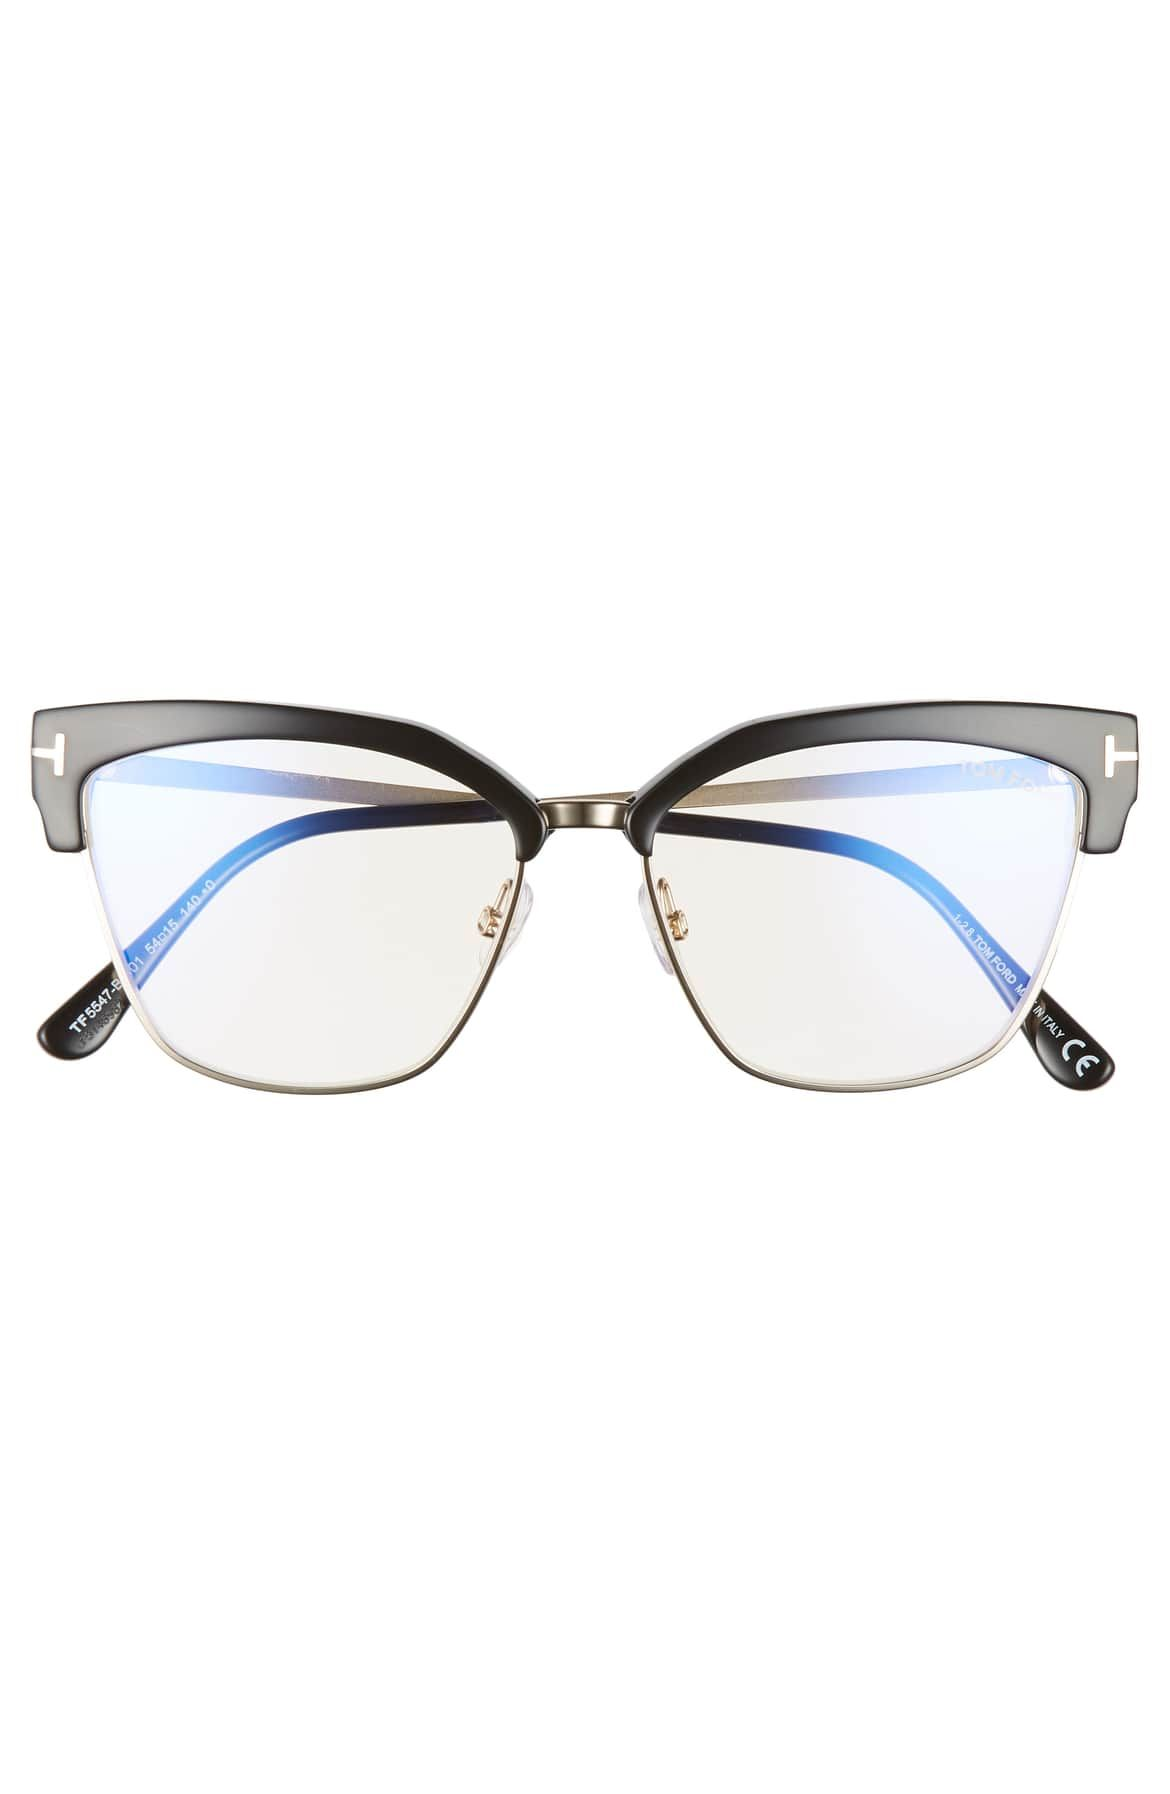 34457866993f 54mm Blue Light Blocking Glasses